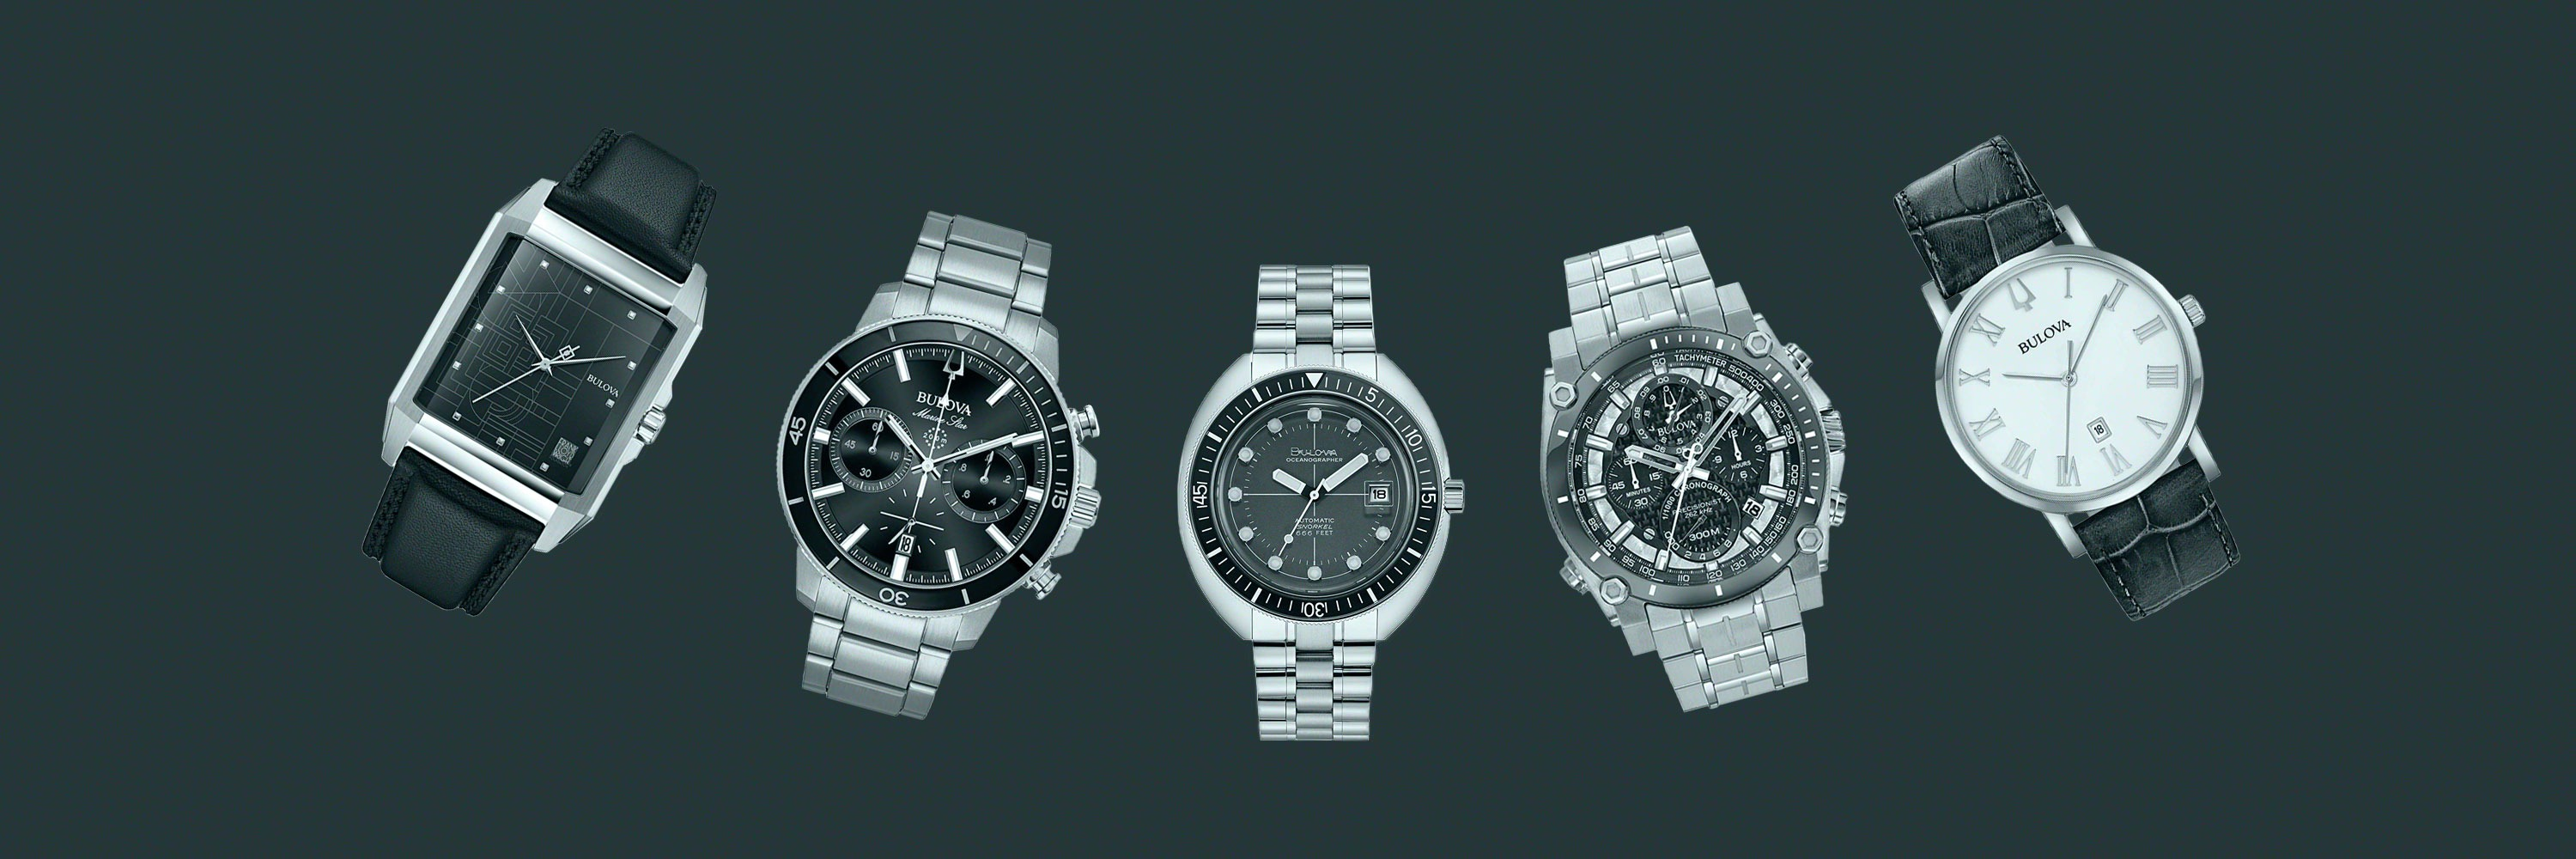 5 bulova brand watches on a green background